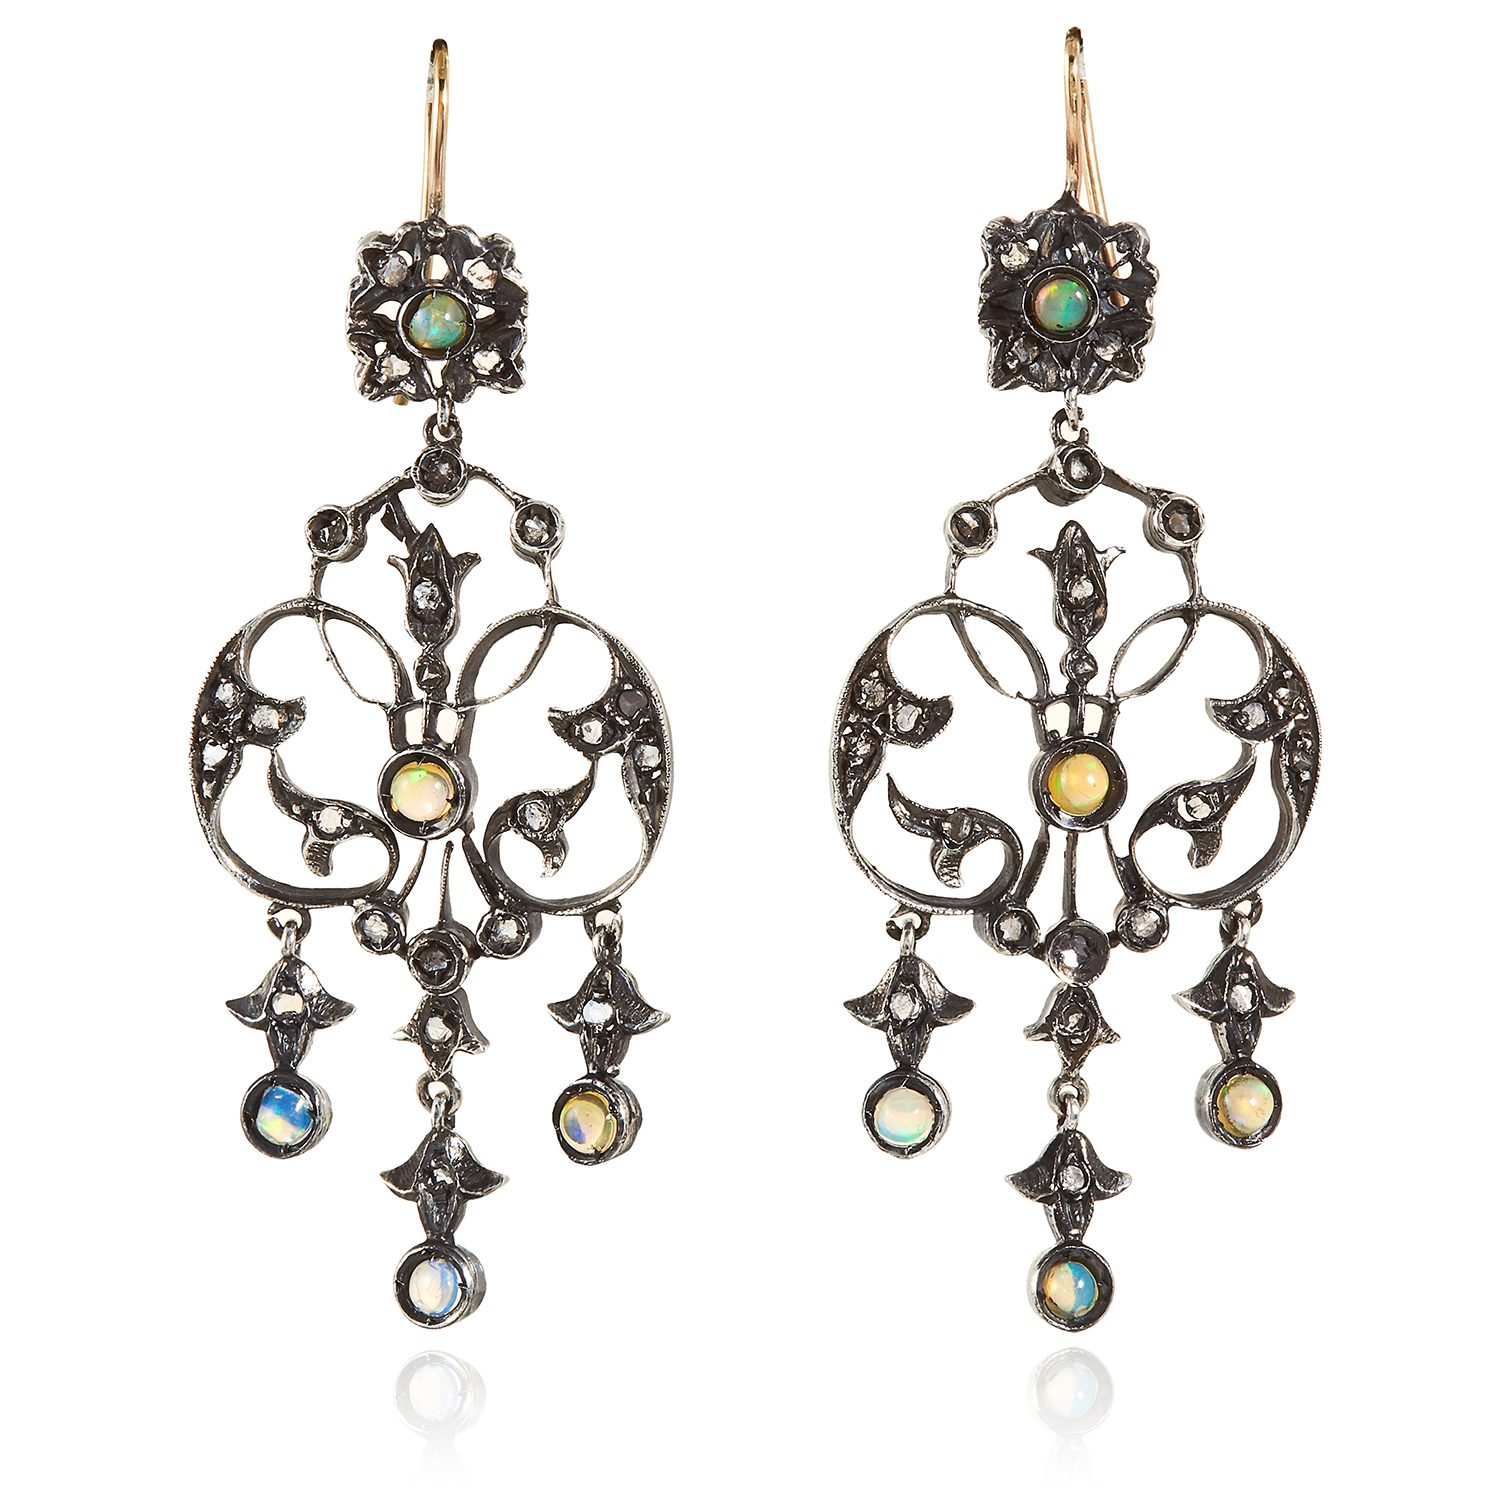 Los 46 - A PAIR OF OPAL AND DIAMOND EARRINGS in gold and silver, the openwork scrolling design set with opals